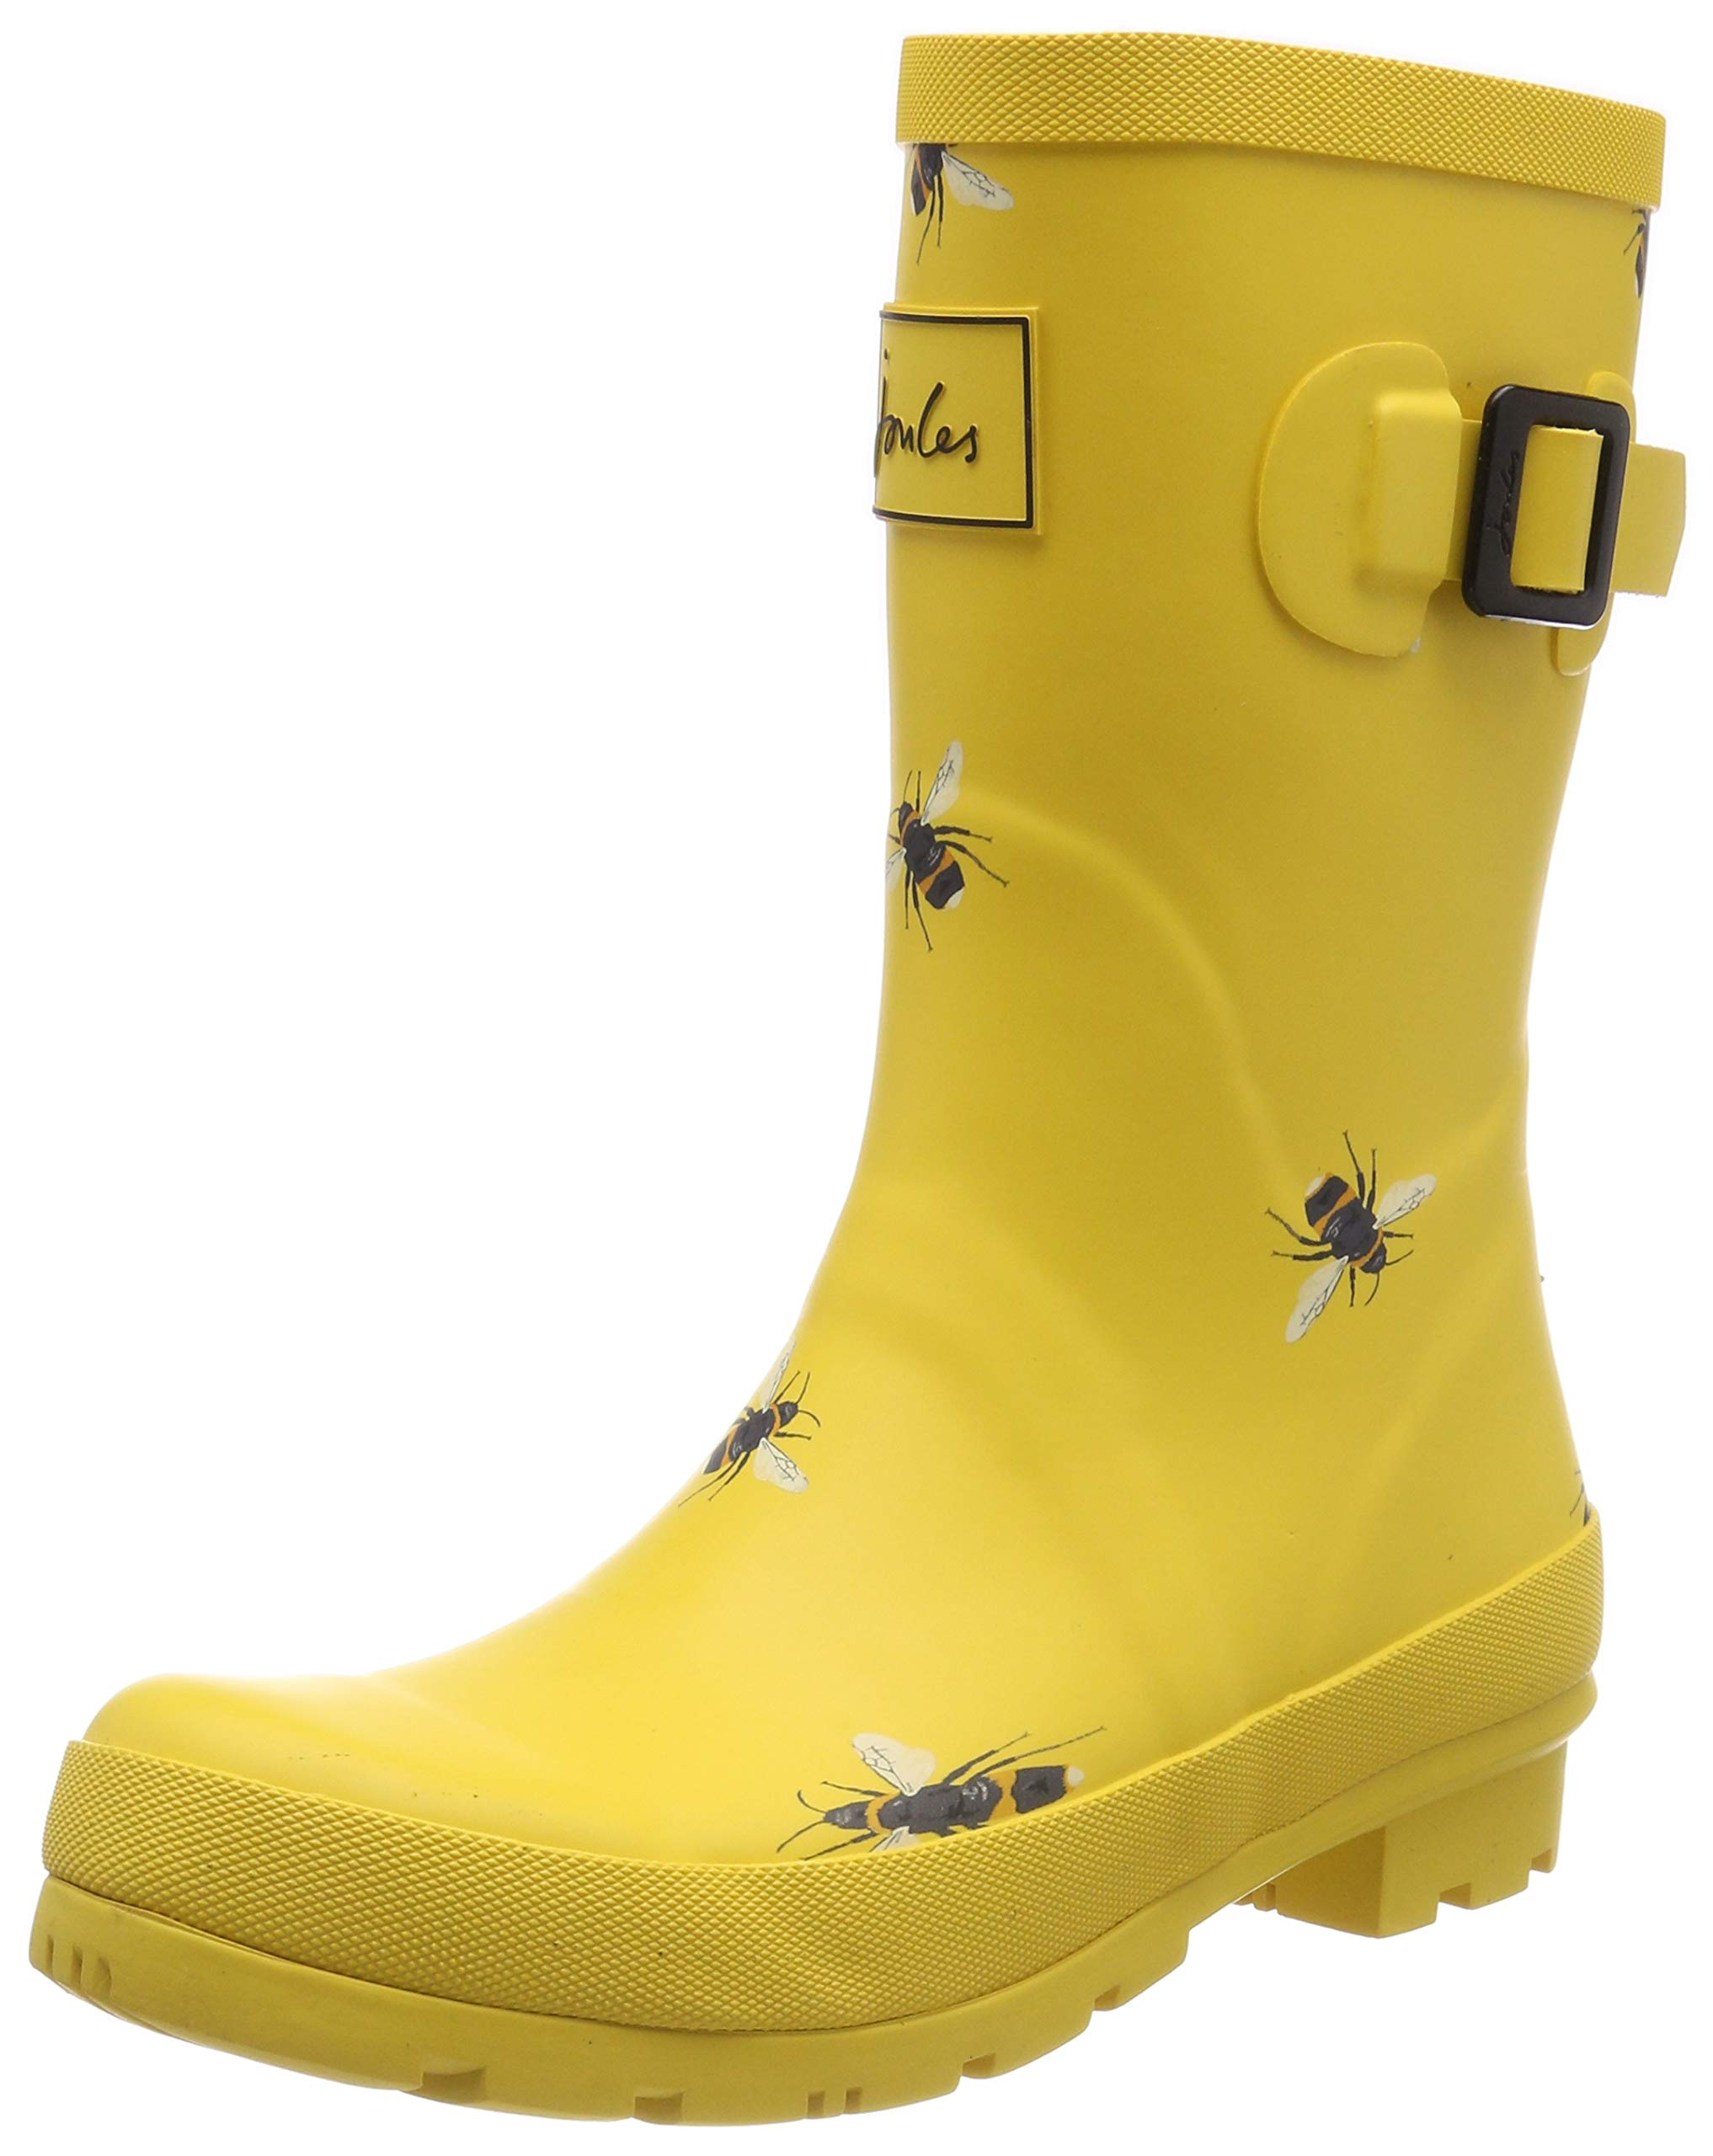 Joules Molly Welly Wellies 8 B(M) US Women / 7 D(M) US Gold Botanical Bee